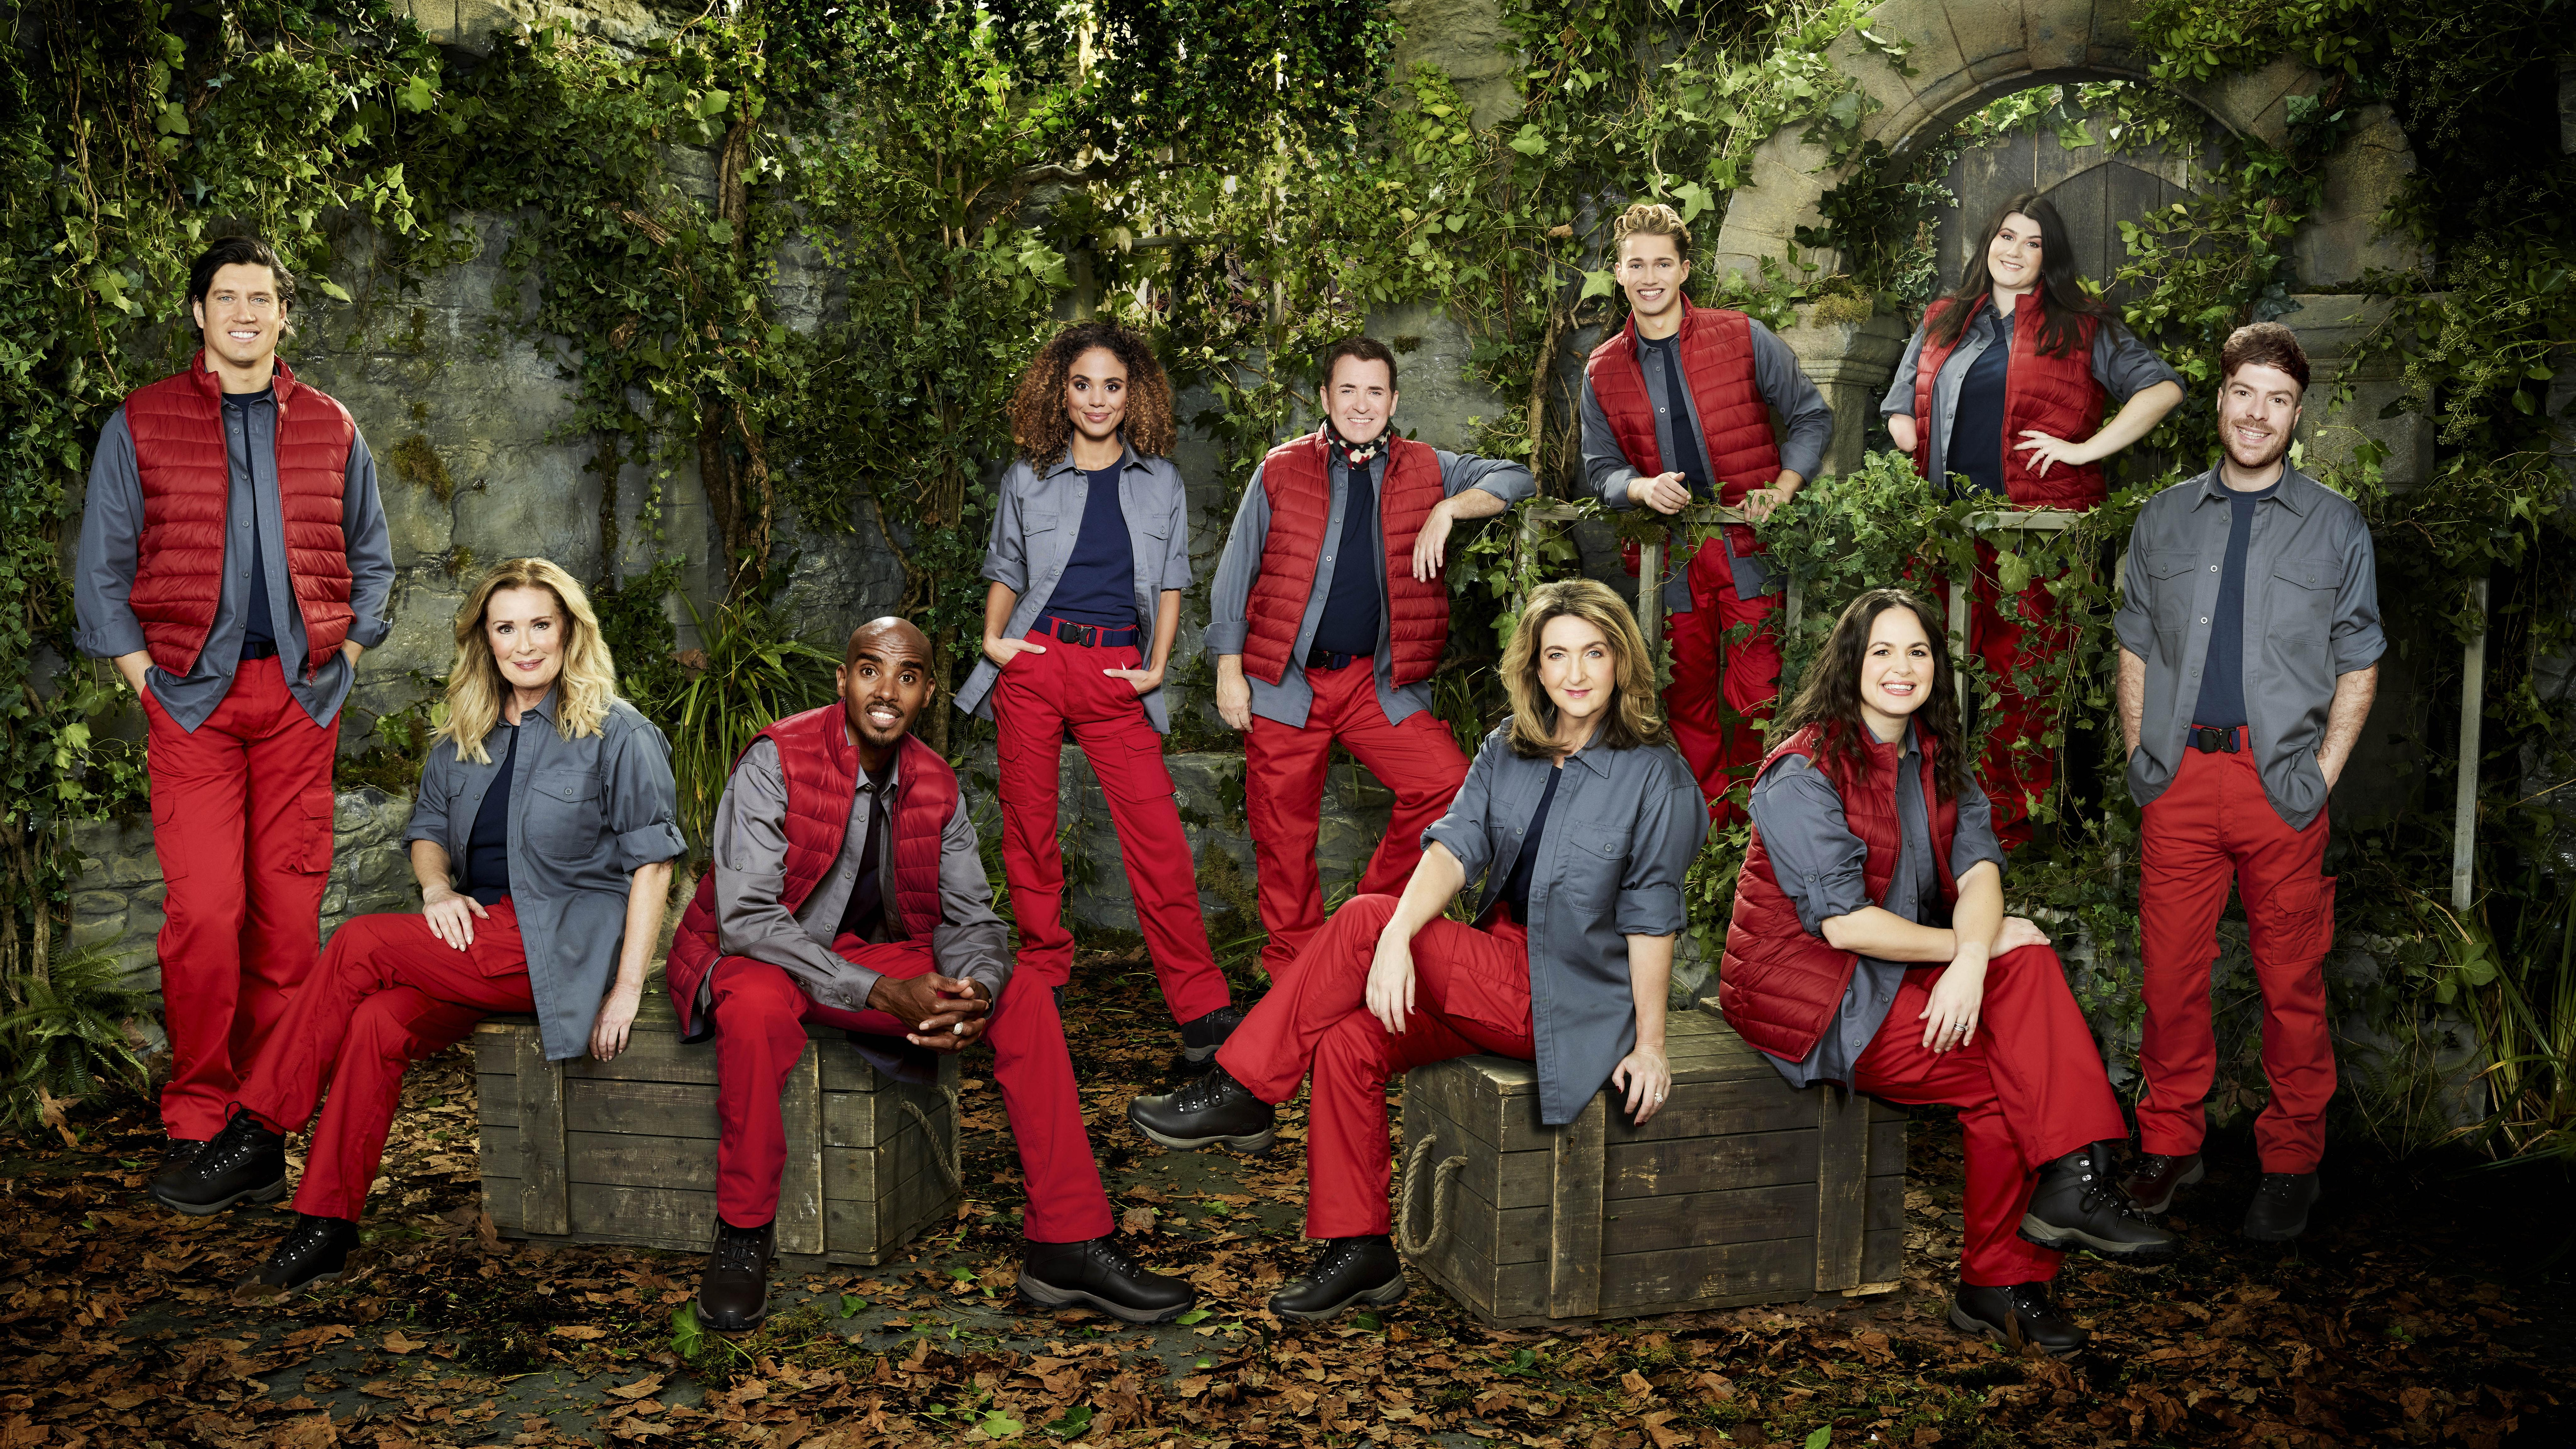 First UK-based I'm A Celebrity series launches to 11m viewers